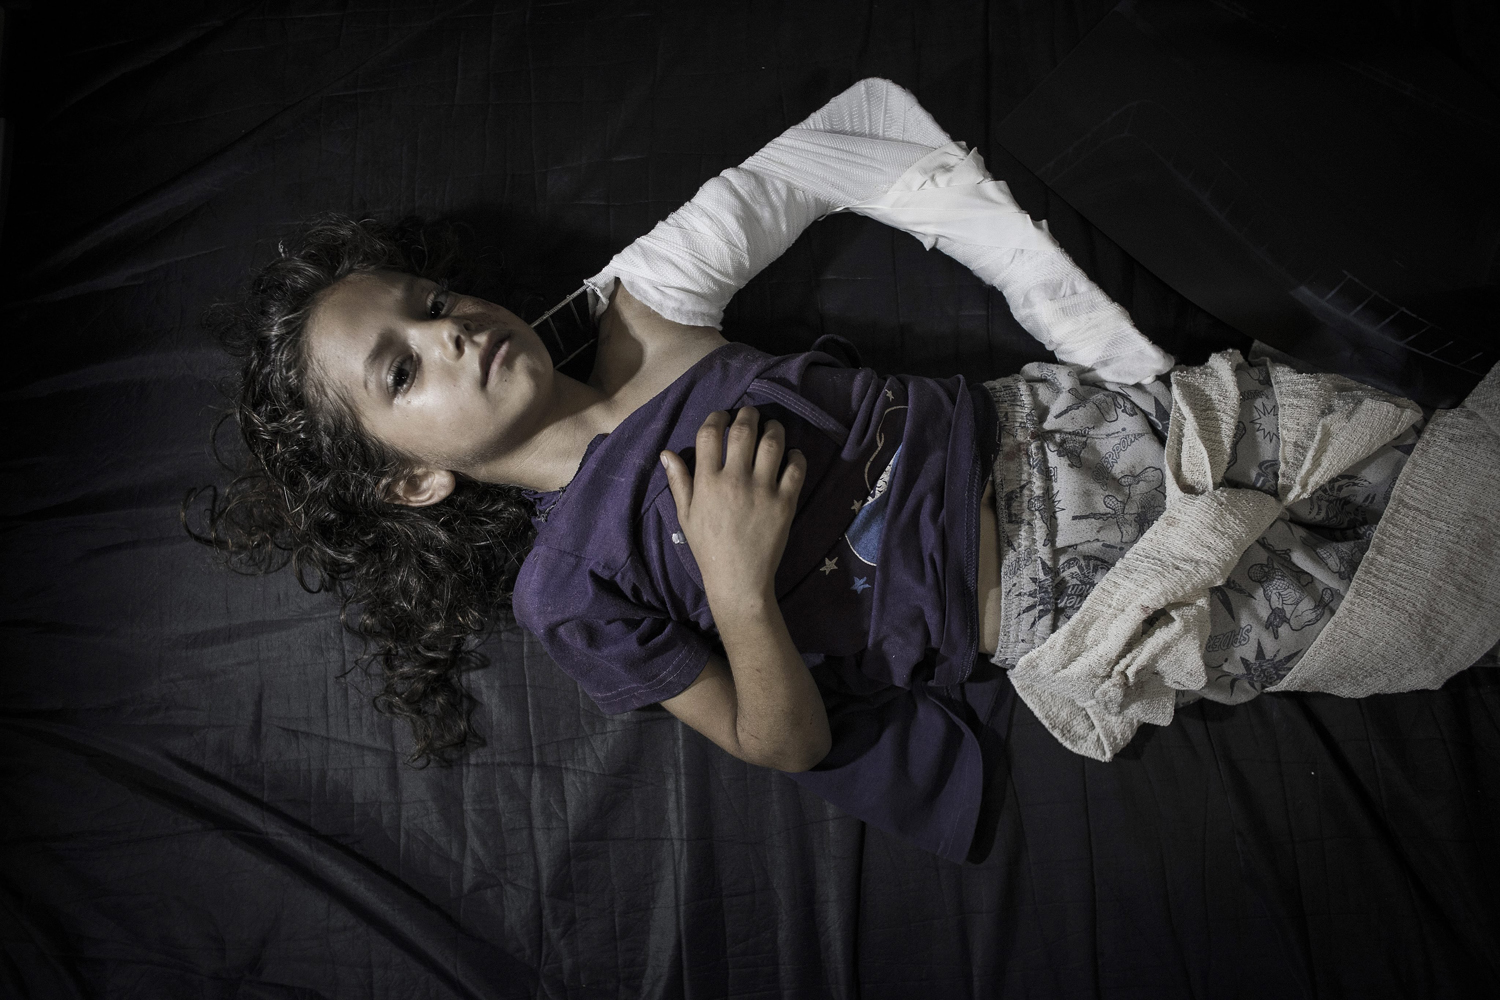 Jul. 24, 2014. A young Palestinian girl who got injured when a UN school for refugees was allegedly hit by a Israeli tank shells, lies on a hospital bed in the emergency room of Kamal Adwan hospital in Beit Lahiya, Gaza Strip.